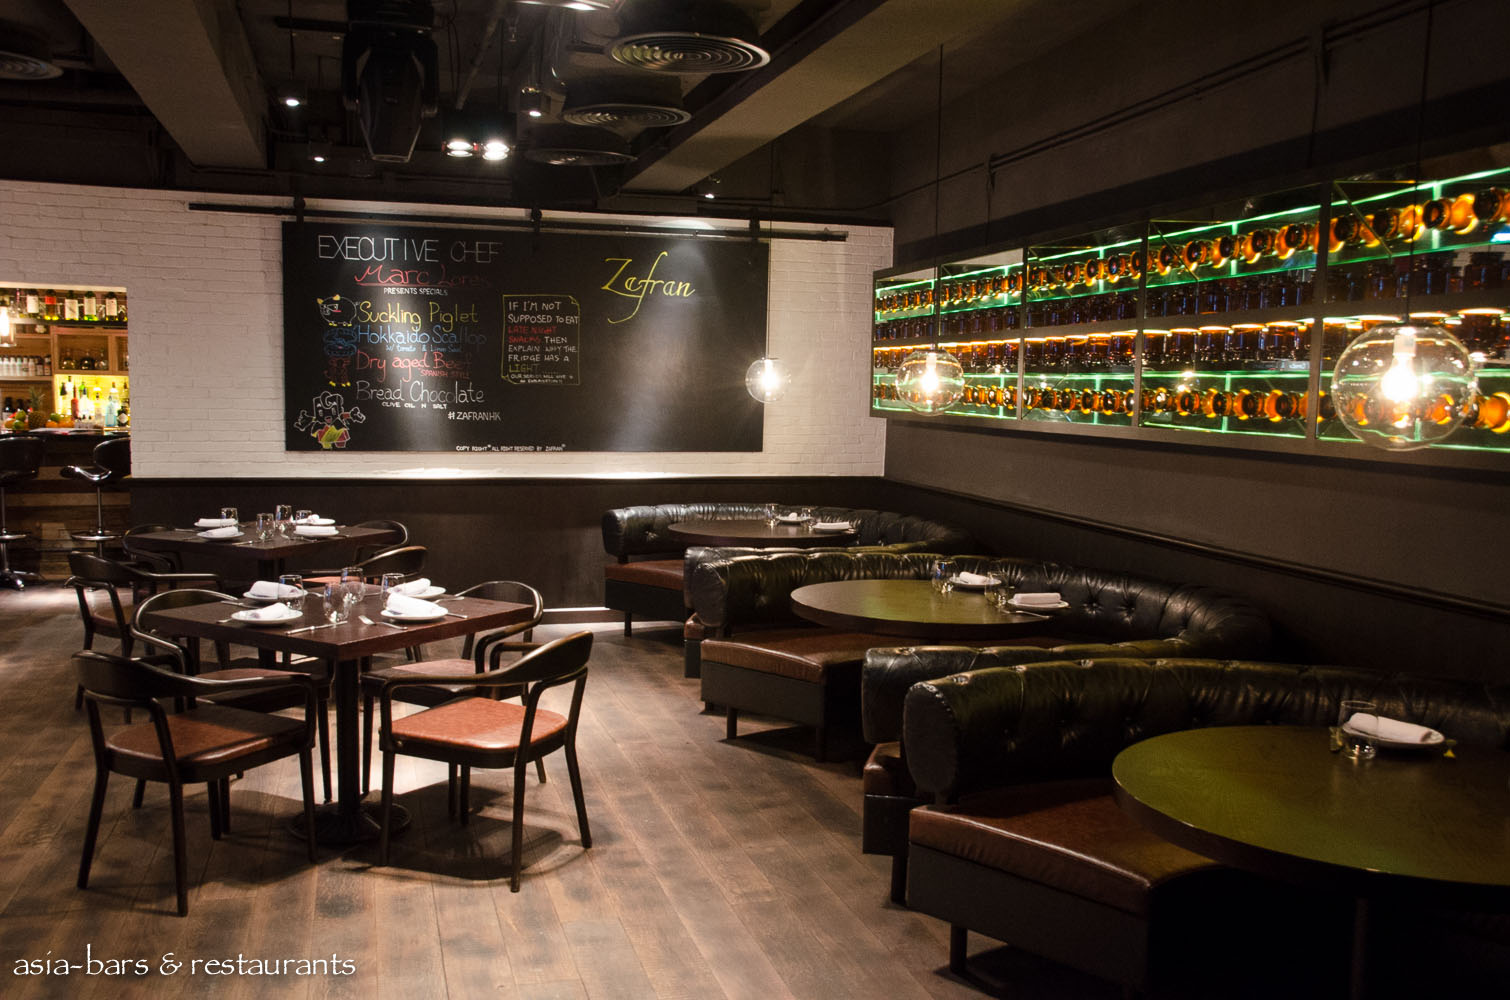 Zafran tapas bar modern spanish restaurant hong kong asia bars restaurants - Moderne loungebar ...